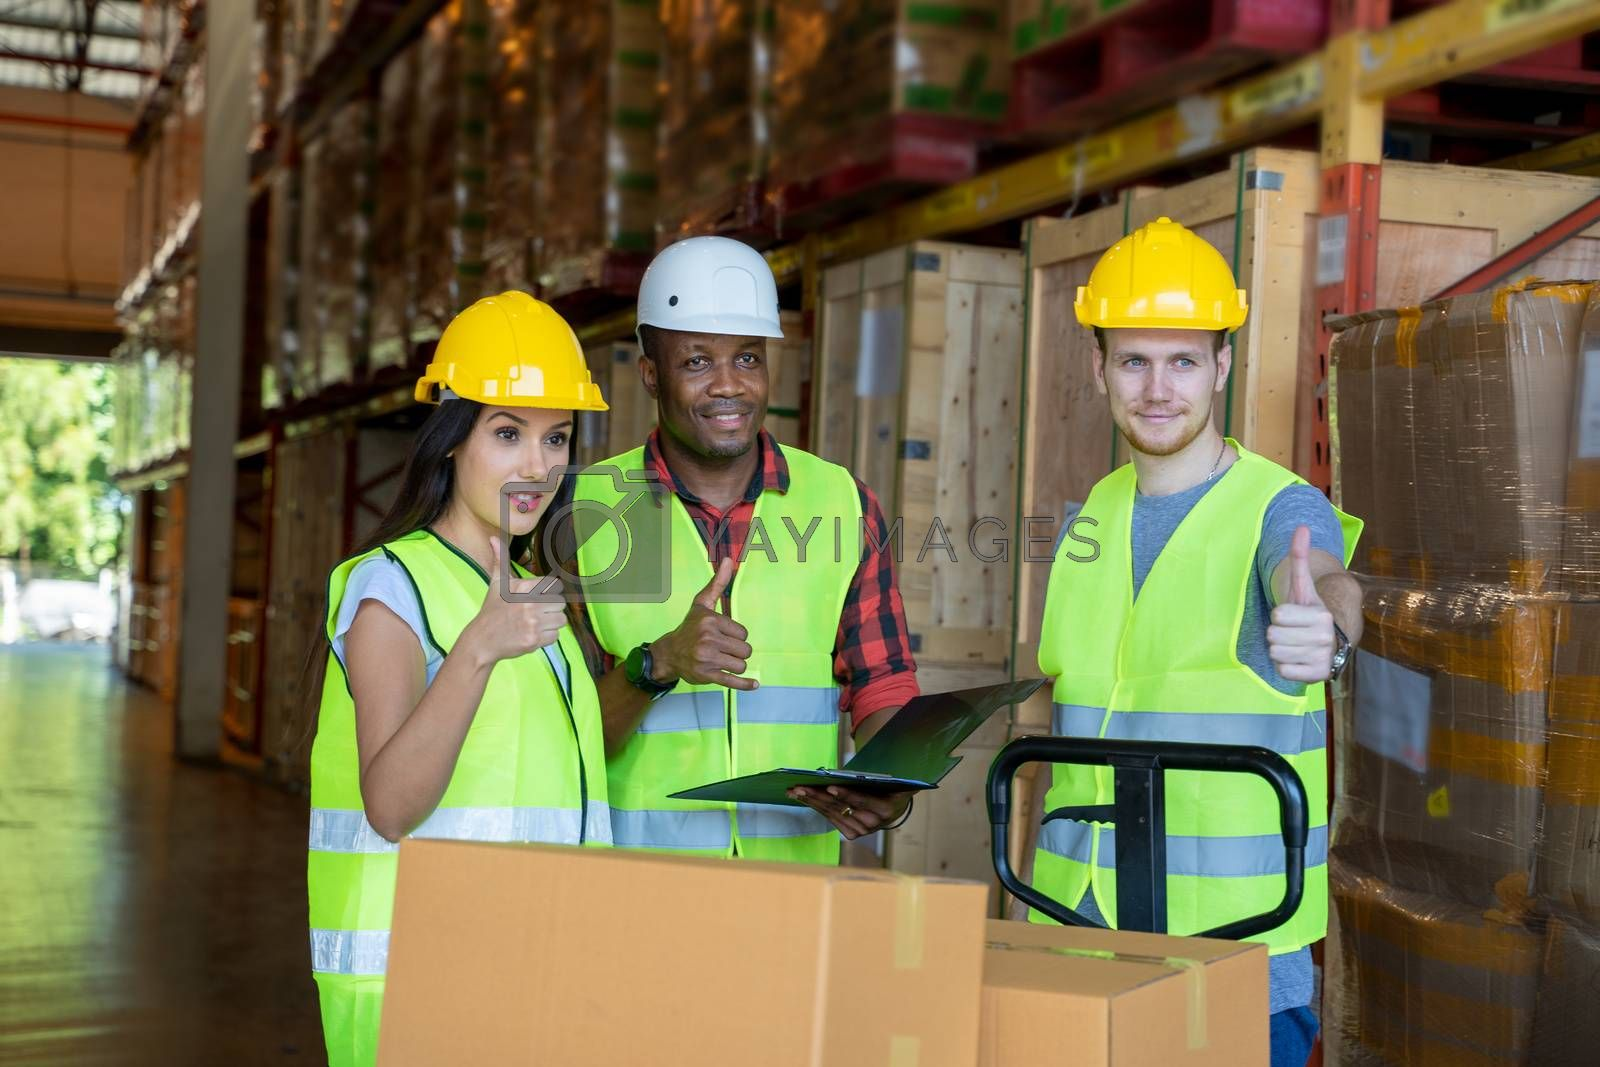 Warehouse workers team standing together in warehouse.